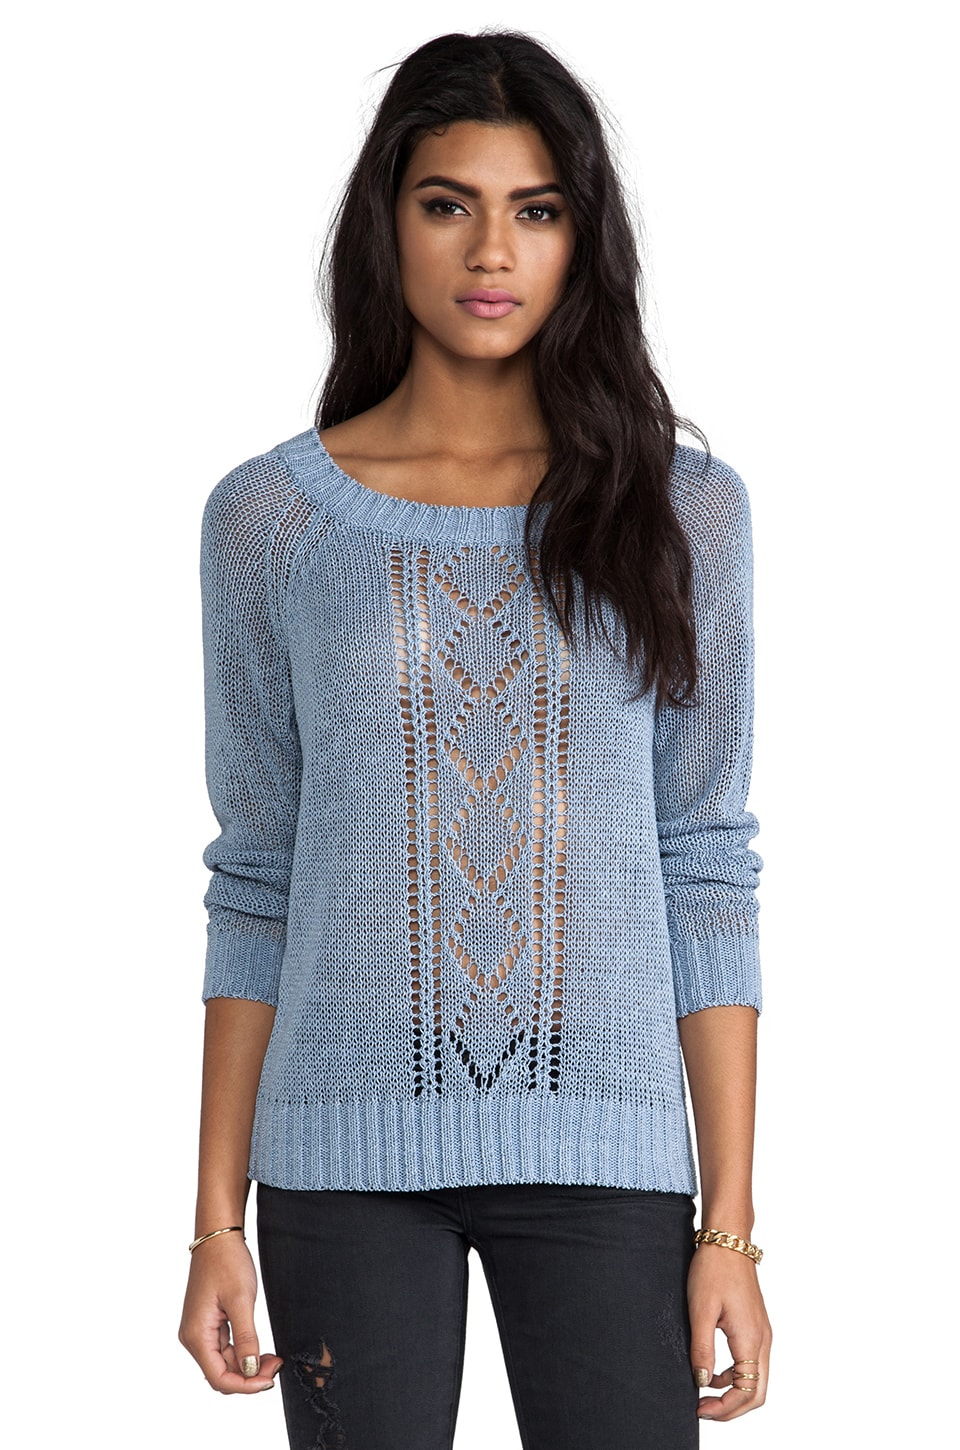 Soft Joie Arden Sweater in Faded Denim